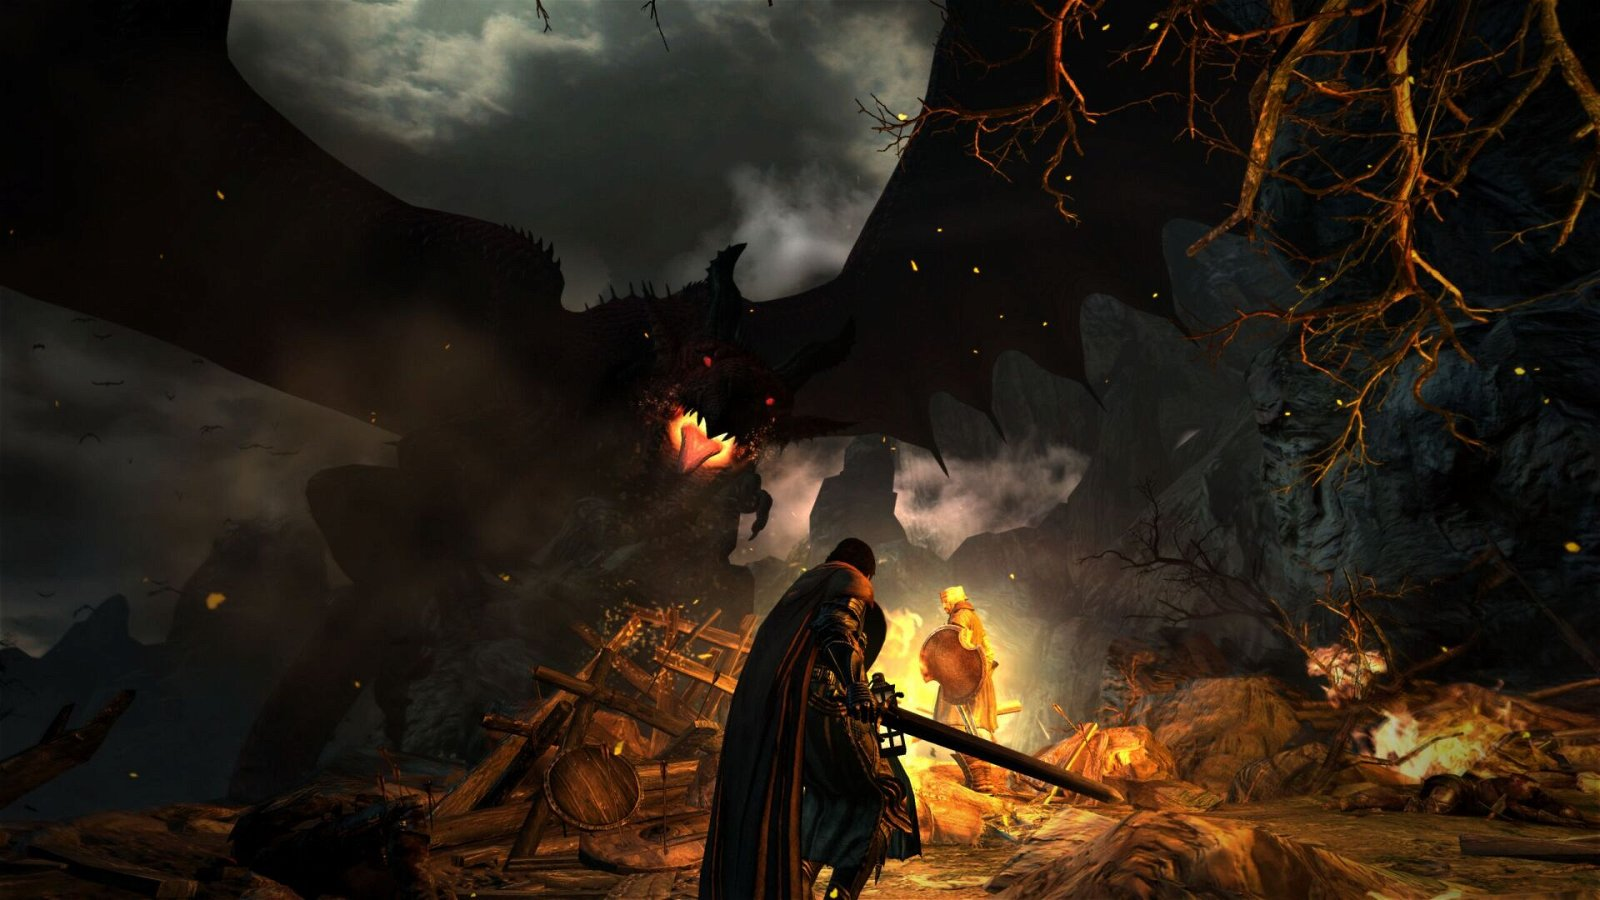 Dragon's Dogma: Dark Arisen (PlayStation 4) Review - A Soulless Pawn 5